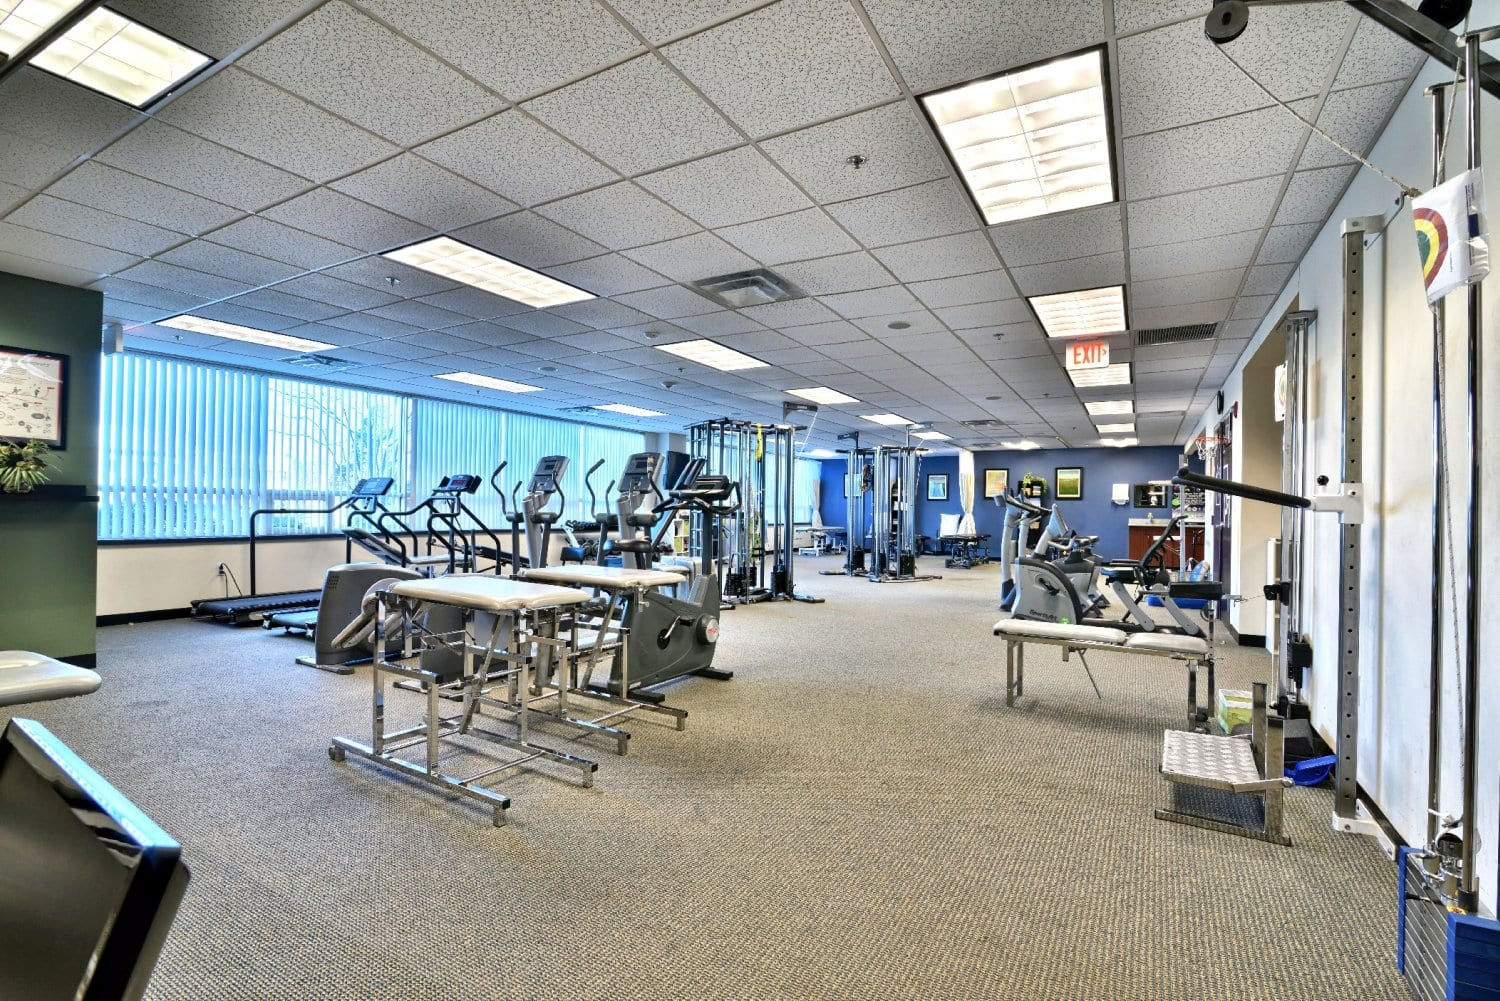 An image of the interior of our physical therapy clinic in Woburn, Massachusetts.